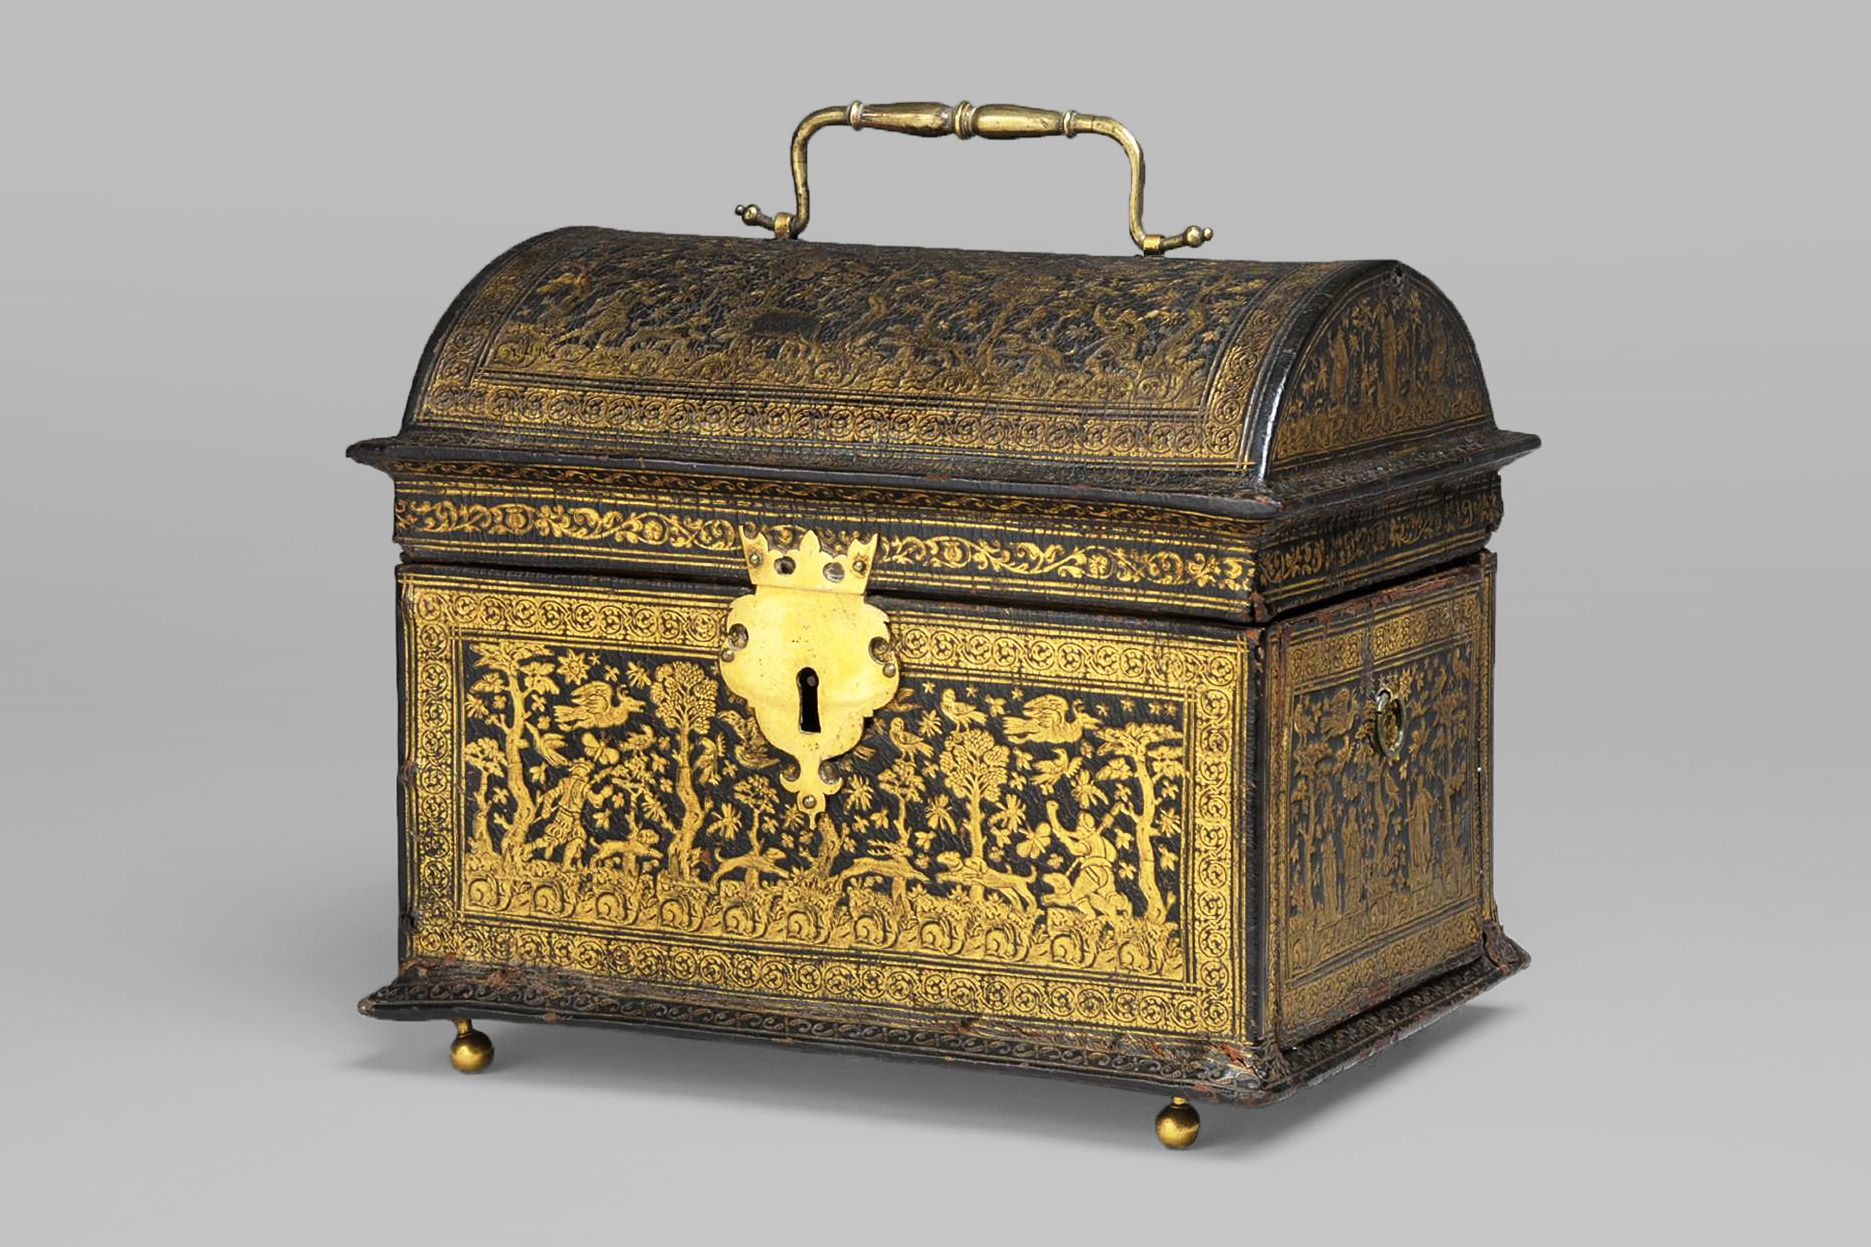 Marriage chest, Flanders, late 16th century